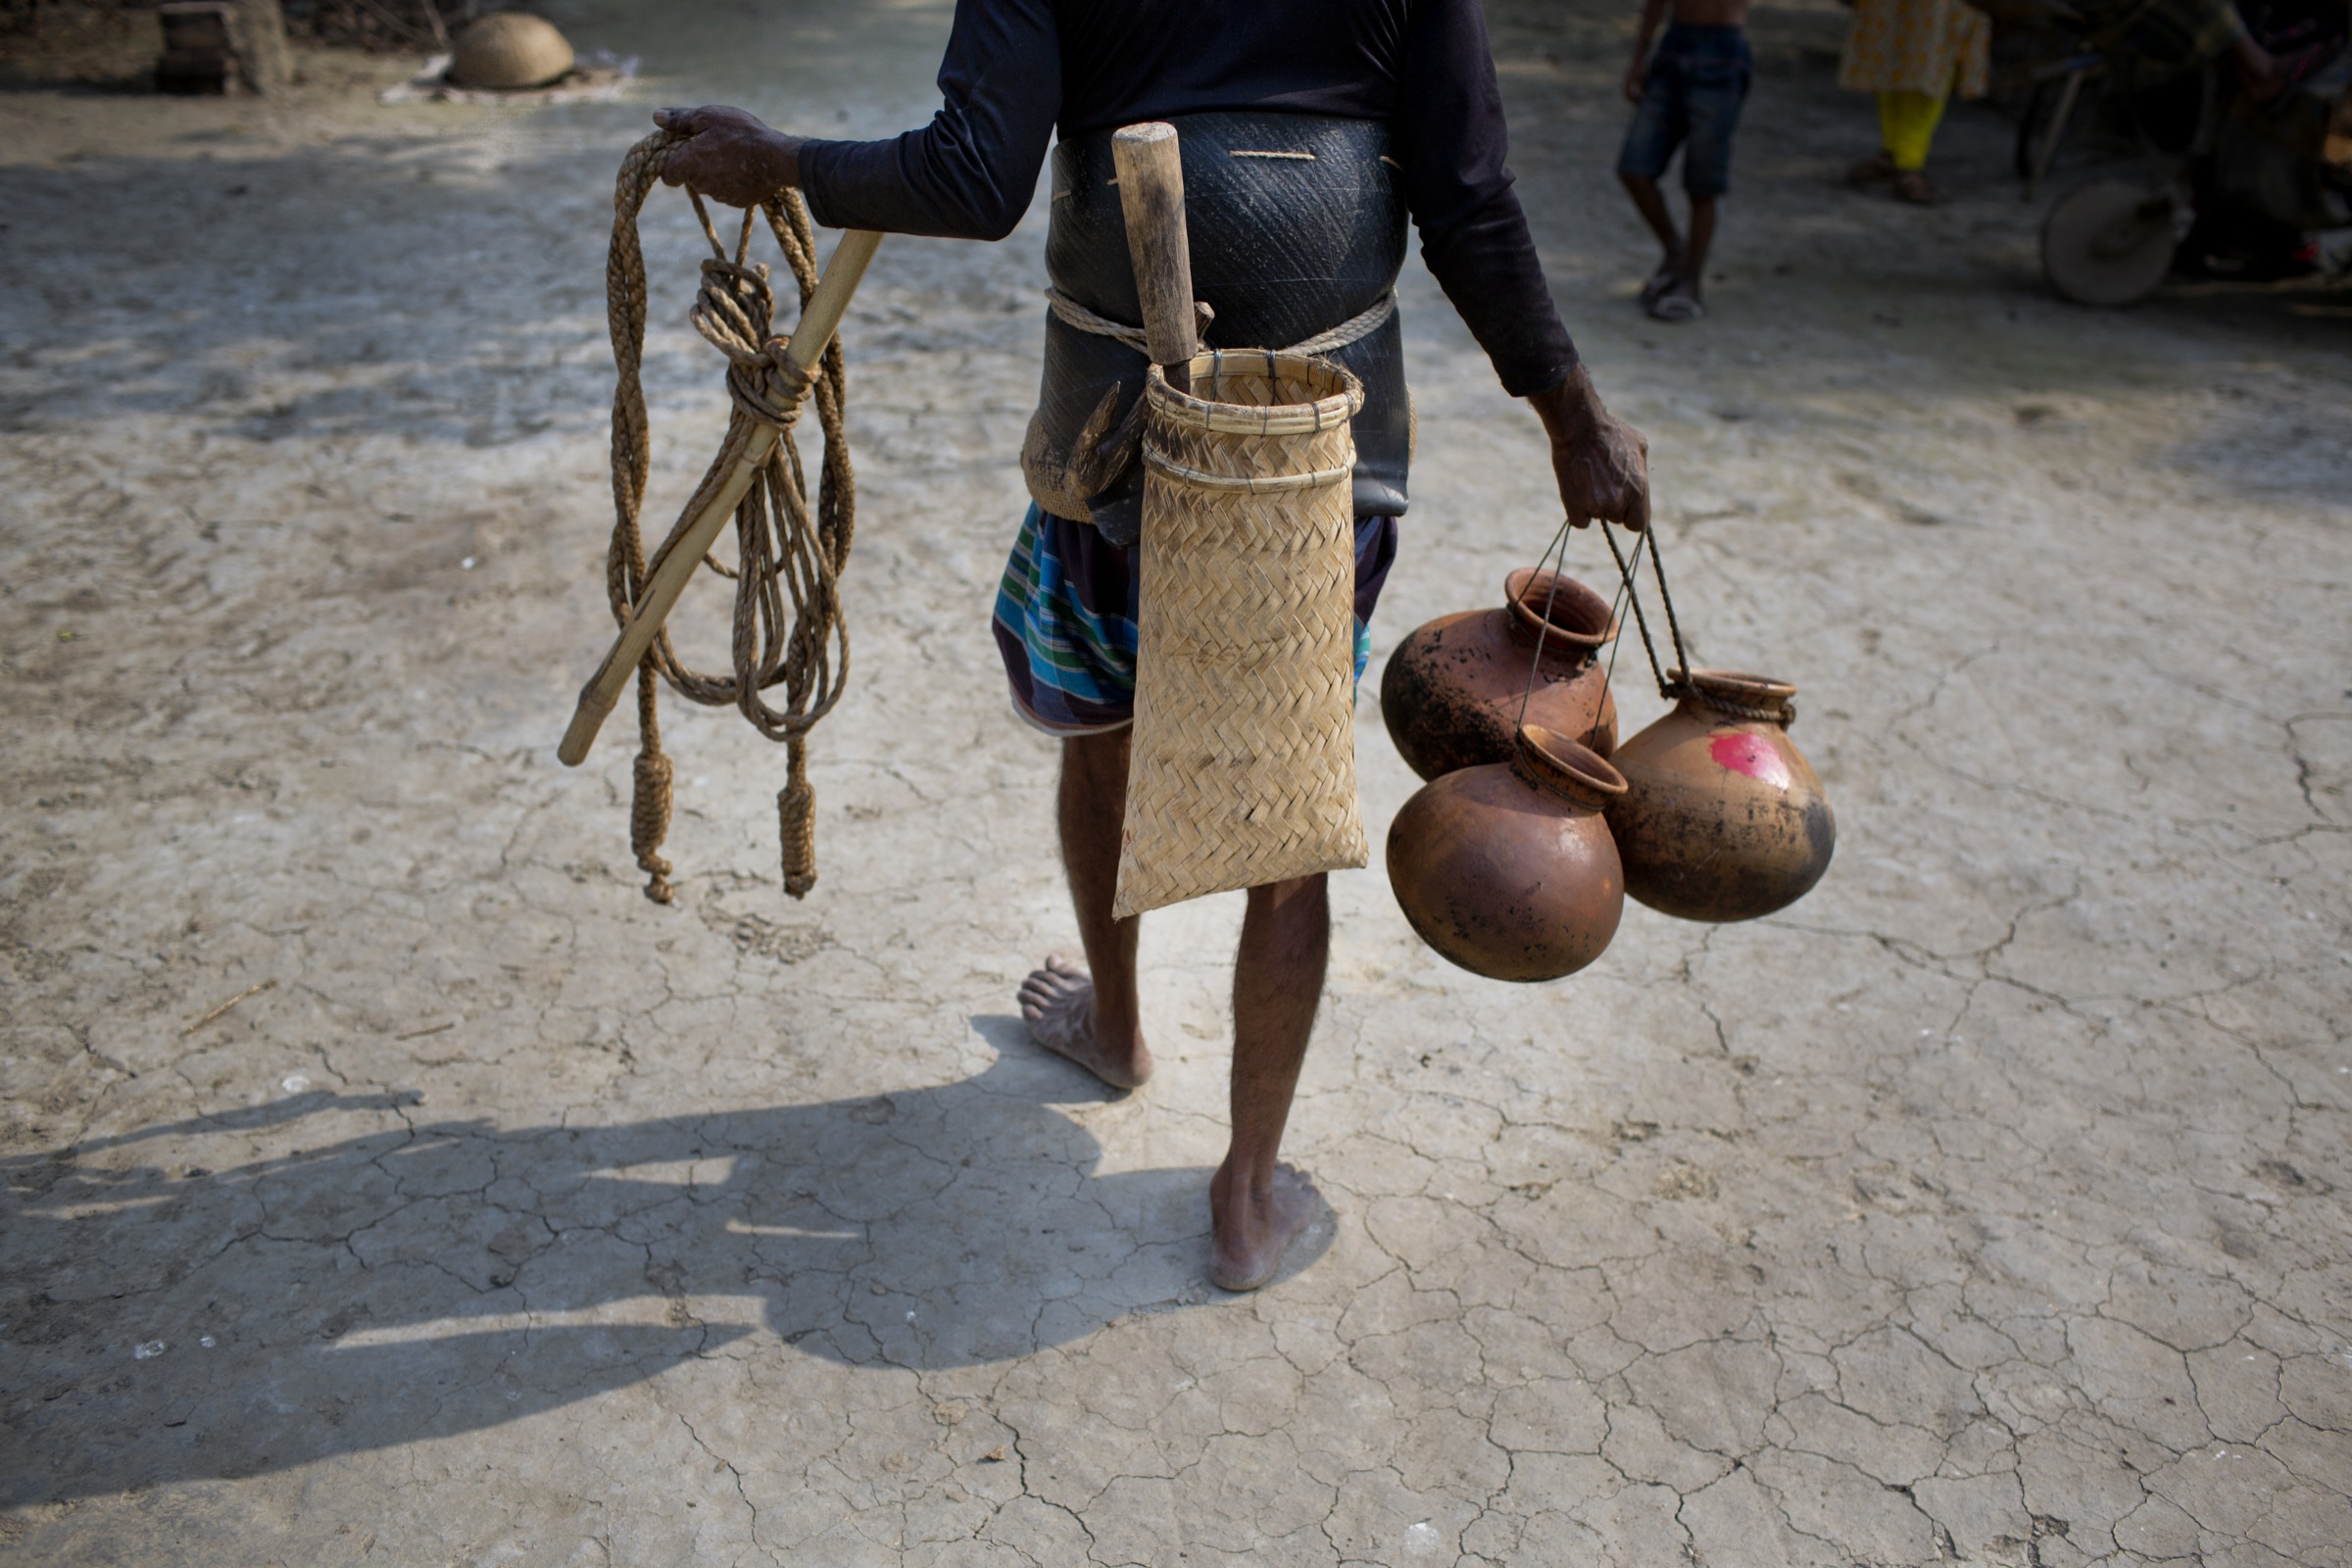 With his tools of the trade, a gachhi goes off to climb and tap date palm trees for the sap that he hopes to sell to excited locals the very next day. Photograph by A.M. Ahad